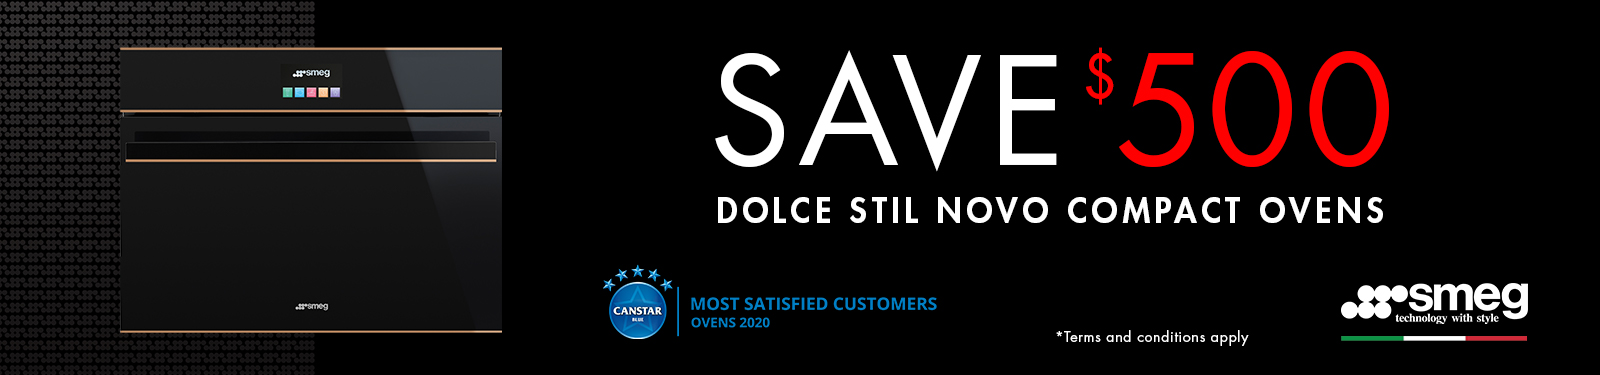 spartan-agency-save-500-dolce.jpg